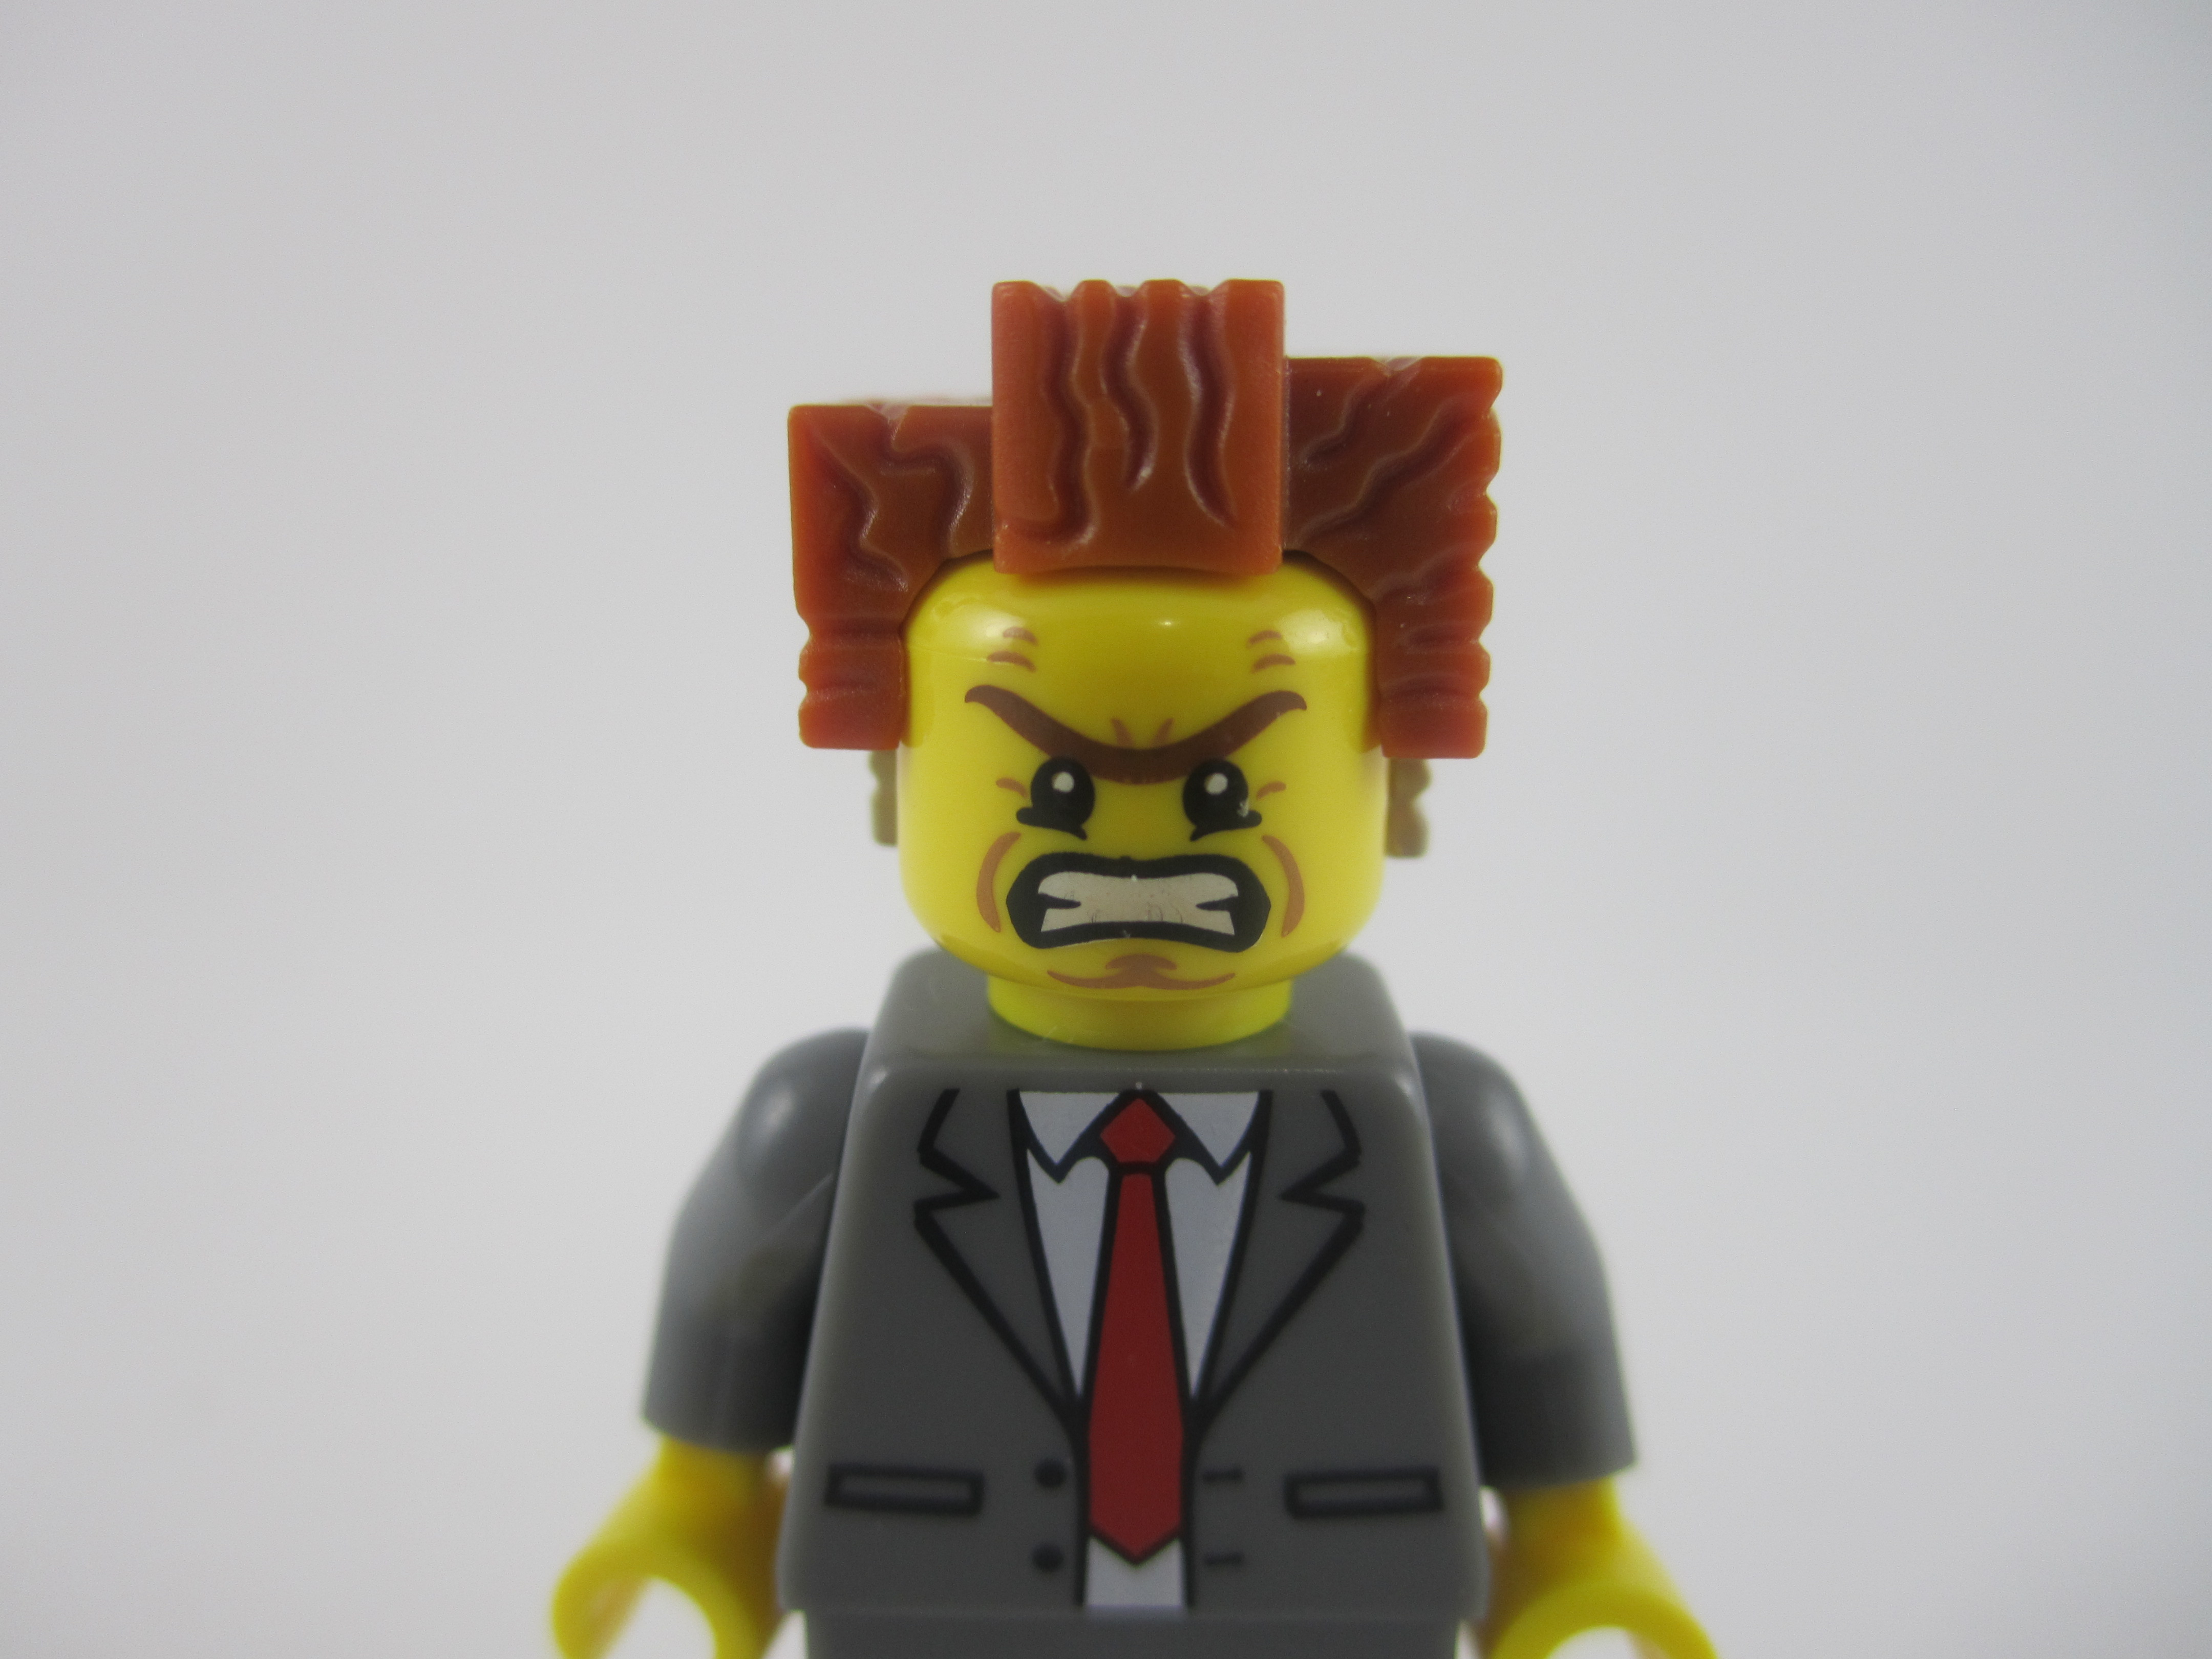 President Business Angry Face